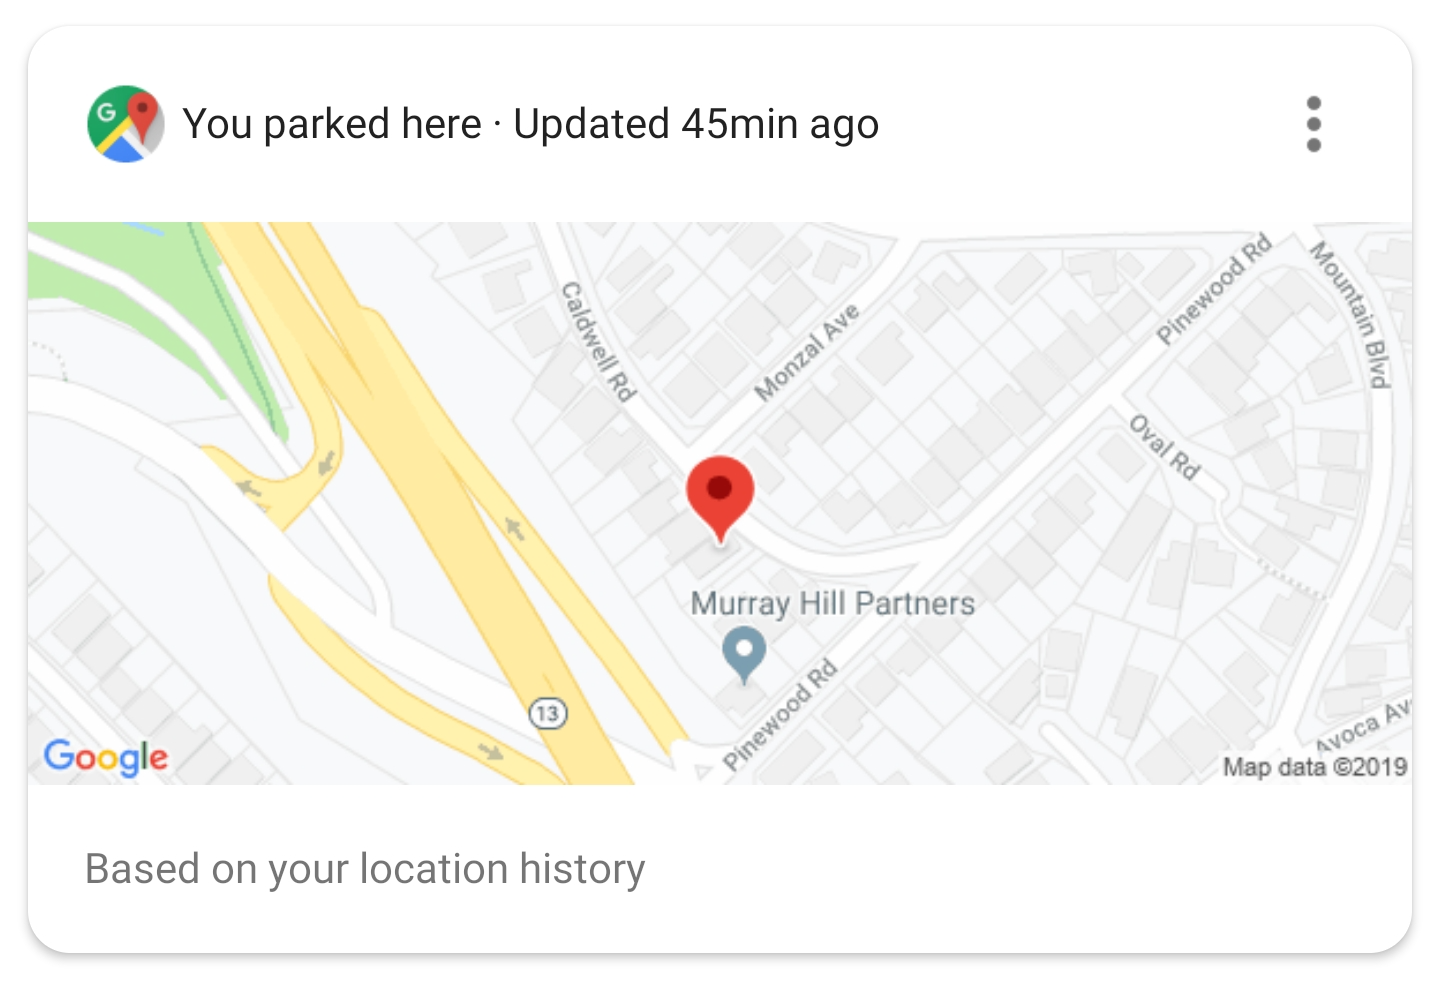 Google Assistant can automatically remember where you've parked for you